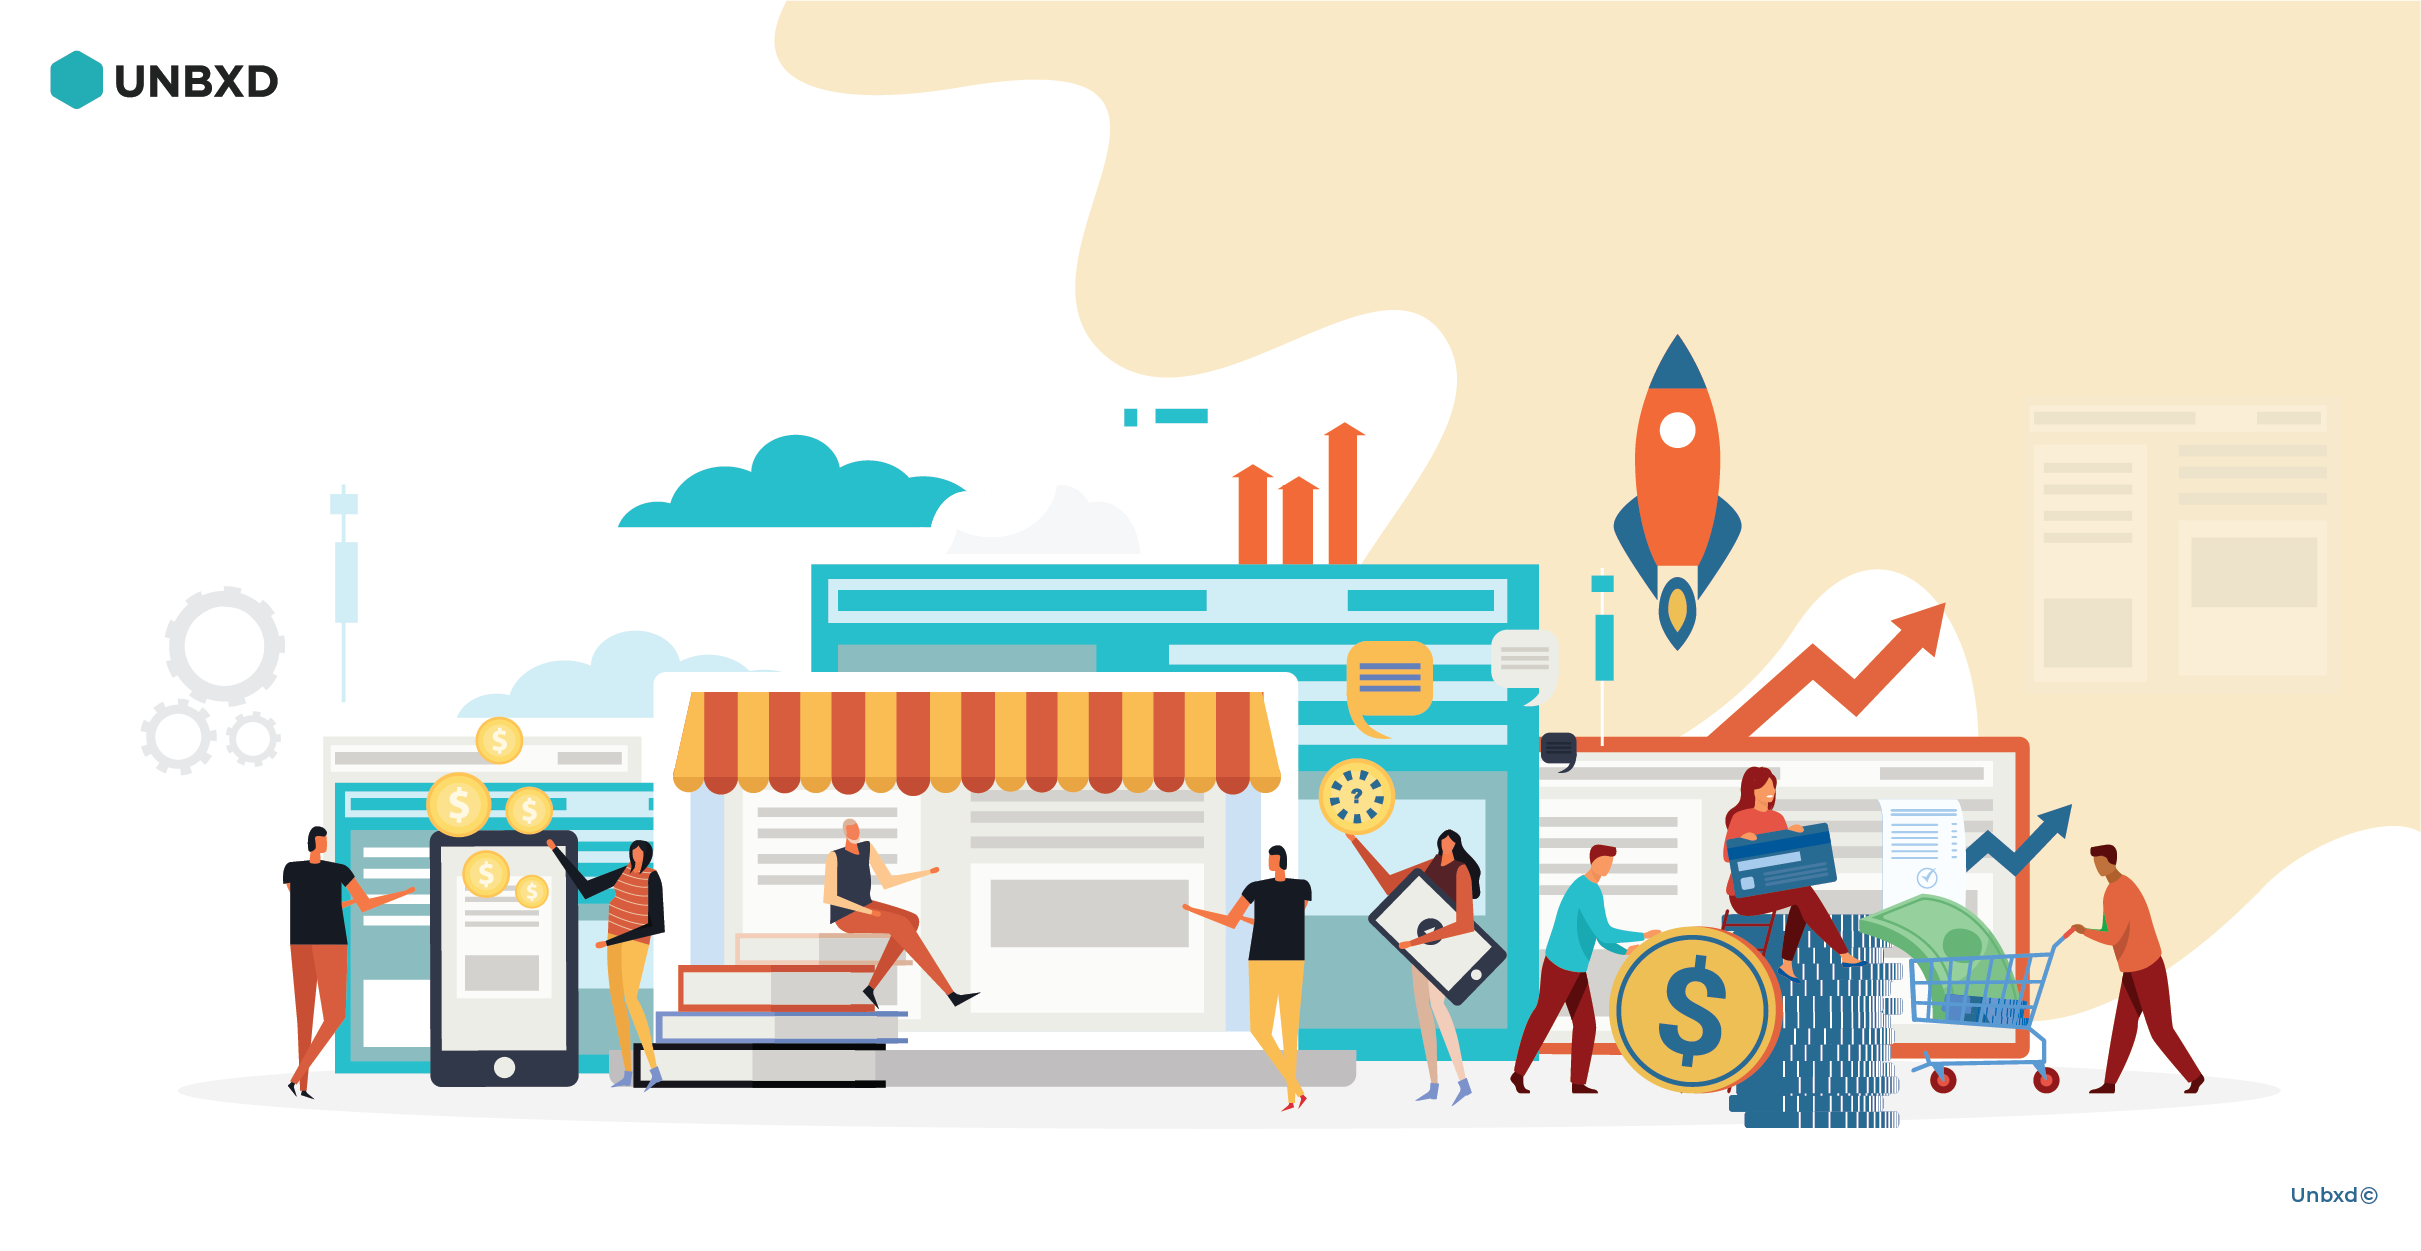 Machine Learning for eCommerce: 5 ways to prepare your business for 2020